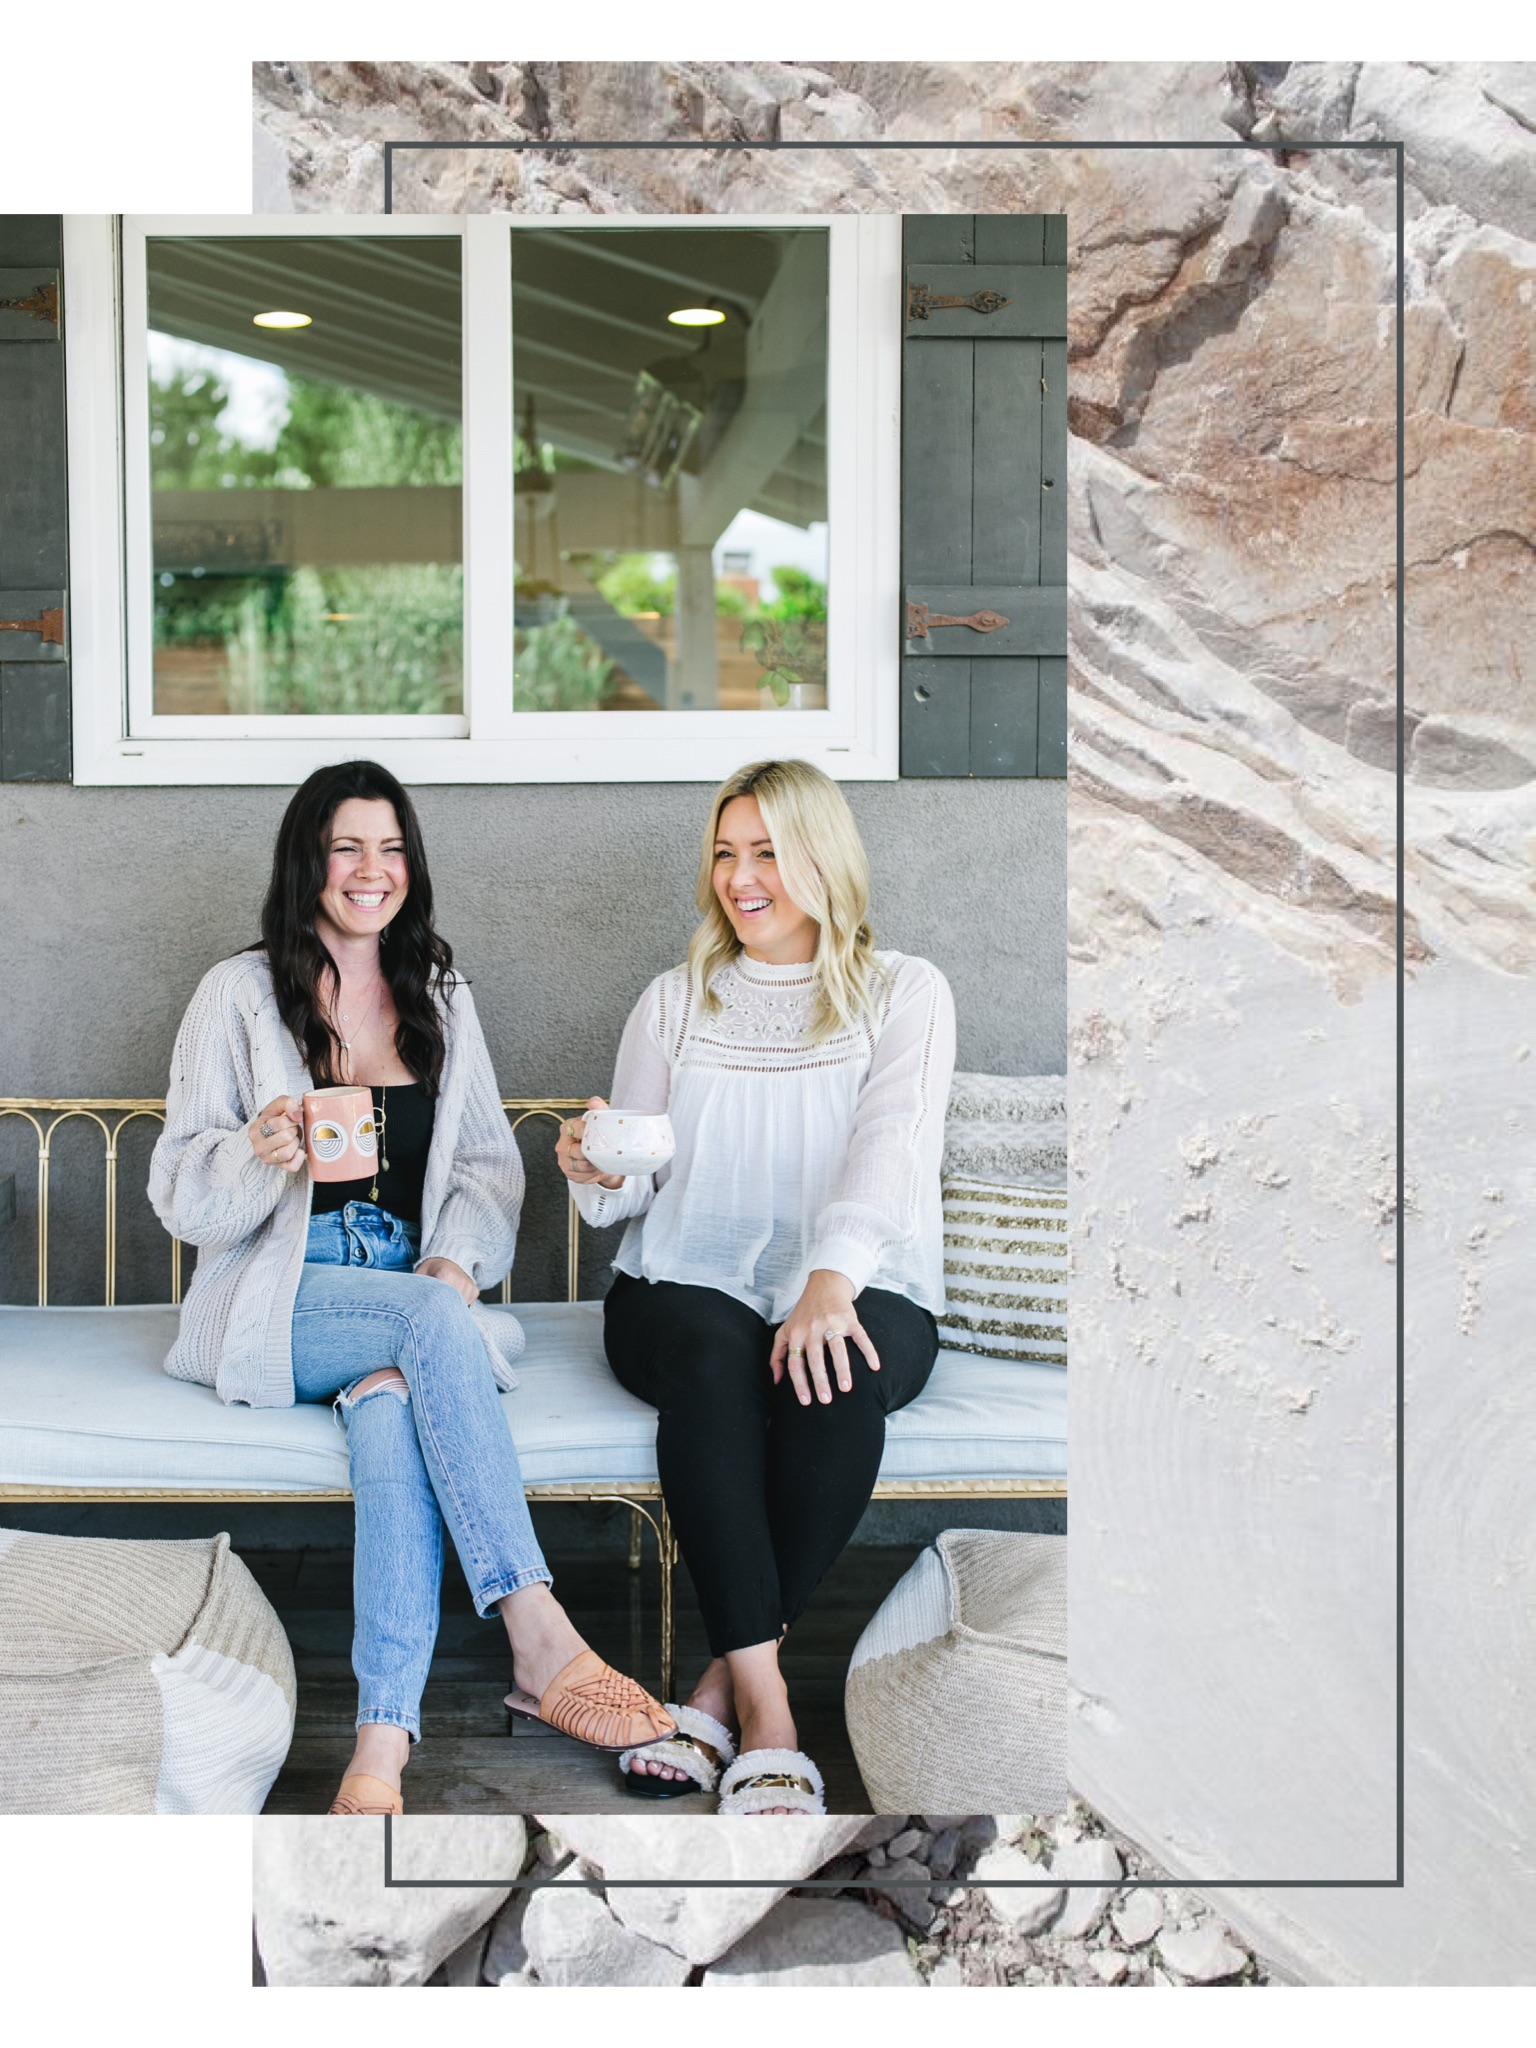 Hello & Welcome - Hi, Jen & Tab here!Out of our hearts to unify women, we created Kinship Cultivated to help you find beauty in your own friendships, while inspiring you to bond over decor, fashion, food & MORE!XOXO